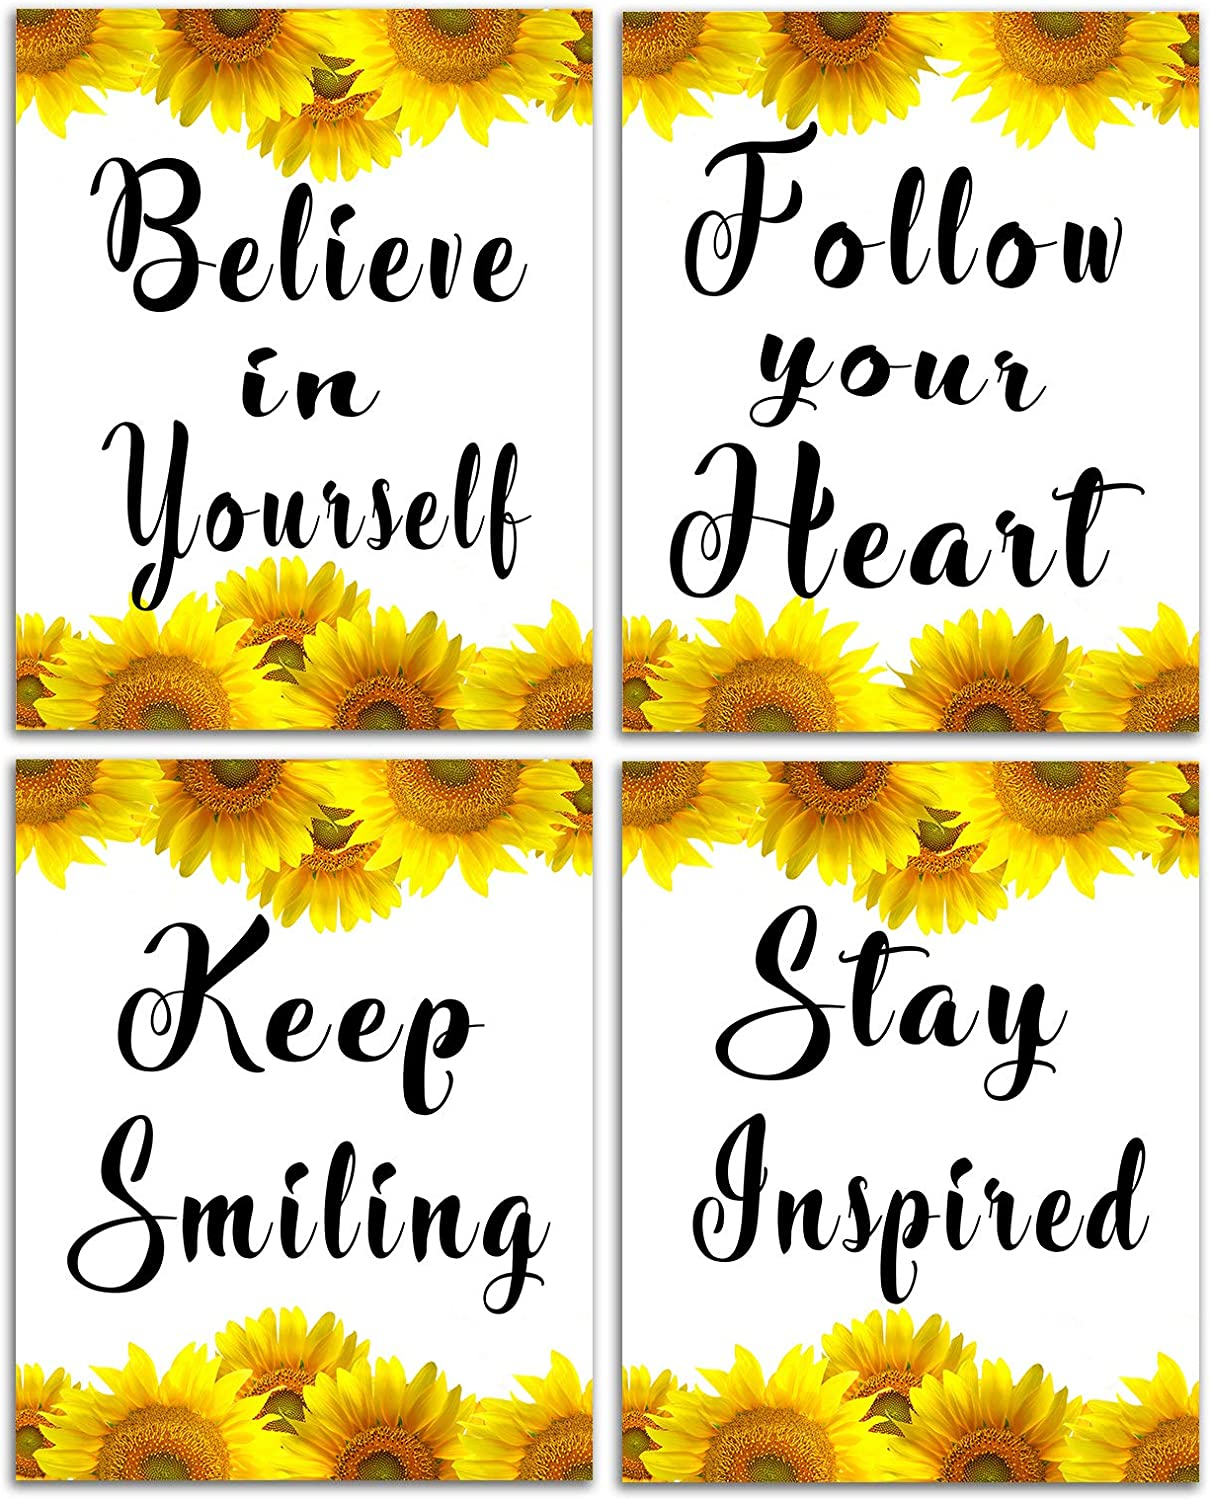 Sunflower Decor Inspirational Wall Art - Motivational Poster Phrase Canvas Print Positive Quotes for Women Men Bathroom Bedroom Sayings Paintings Artwork Modern Rustic Decorations 8x10inch Unframed